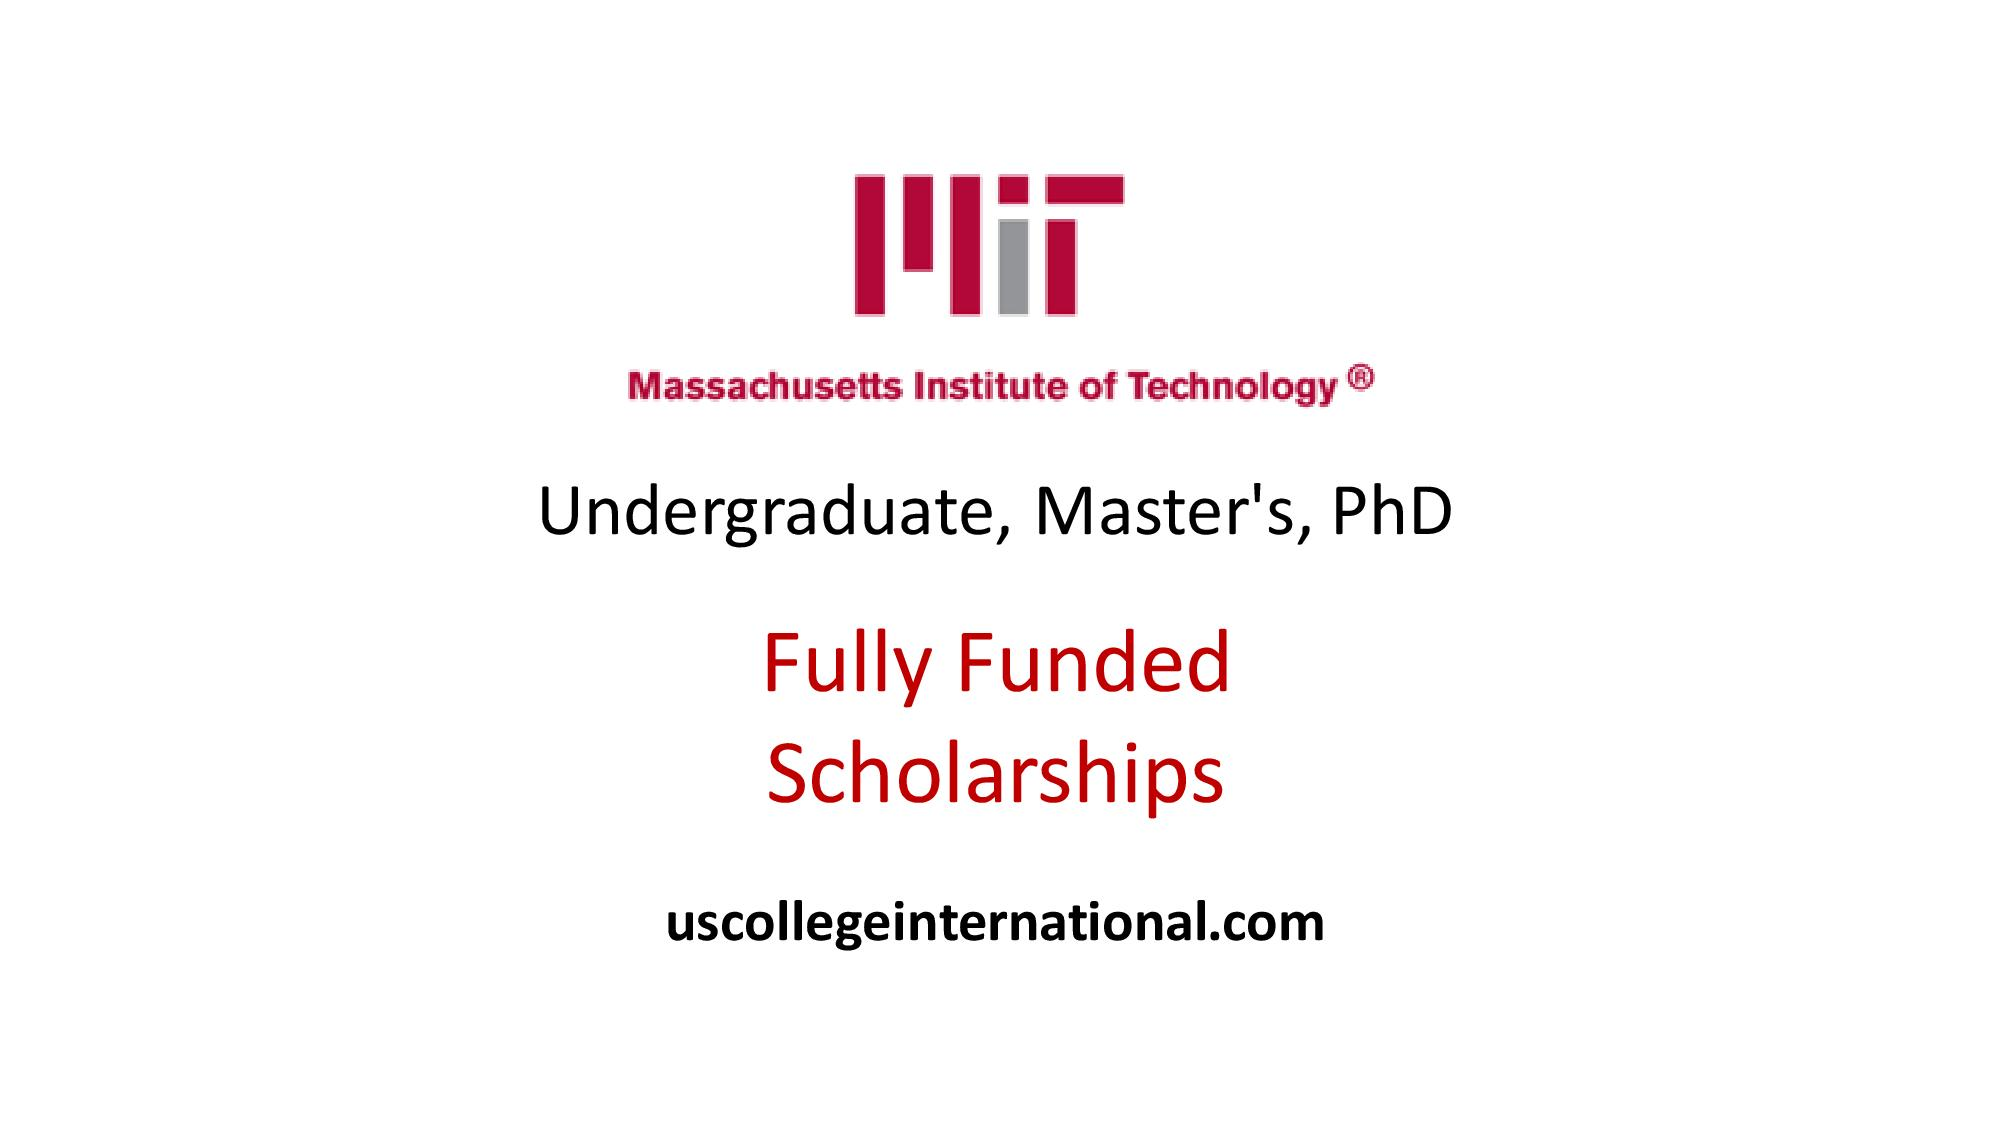 Mit Scholarships 2018 Fully Funded Global Scholarships For